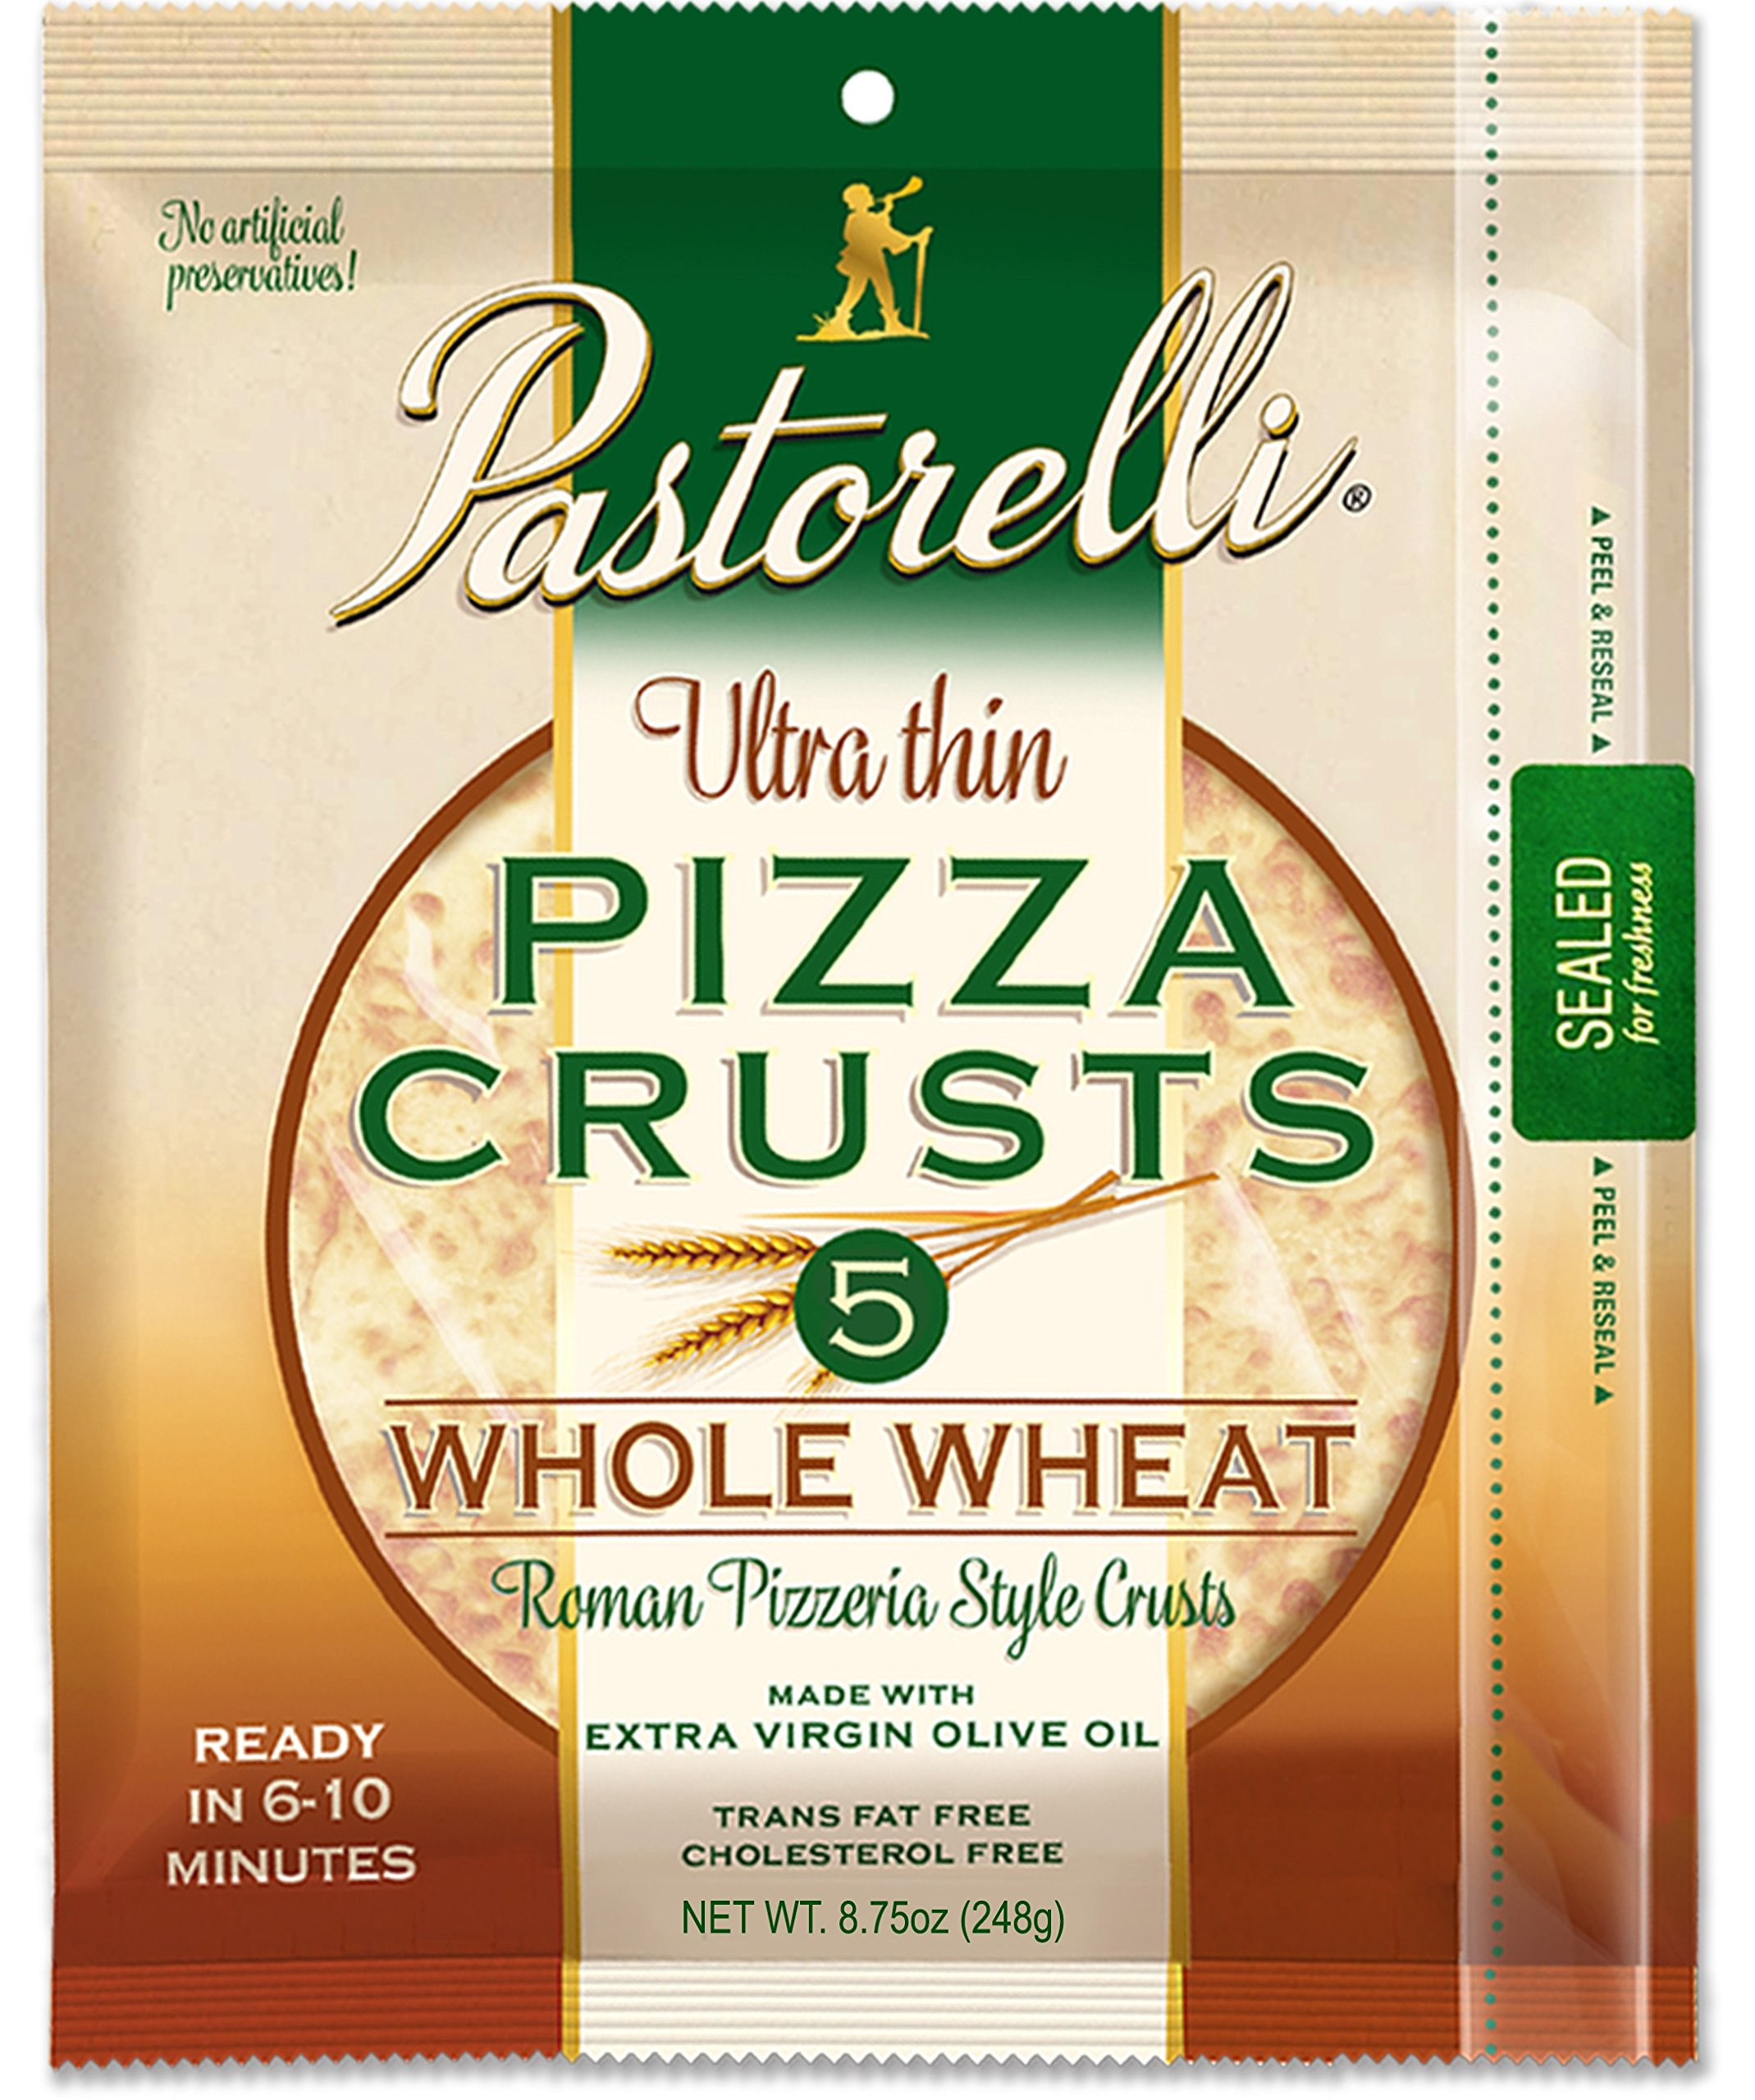 Pastorelli Ultra Thin & Crispy Pizza Crust, Whole Wheat, 12-inch, 3-ct (Pack of 6)